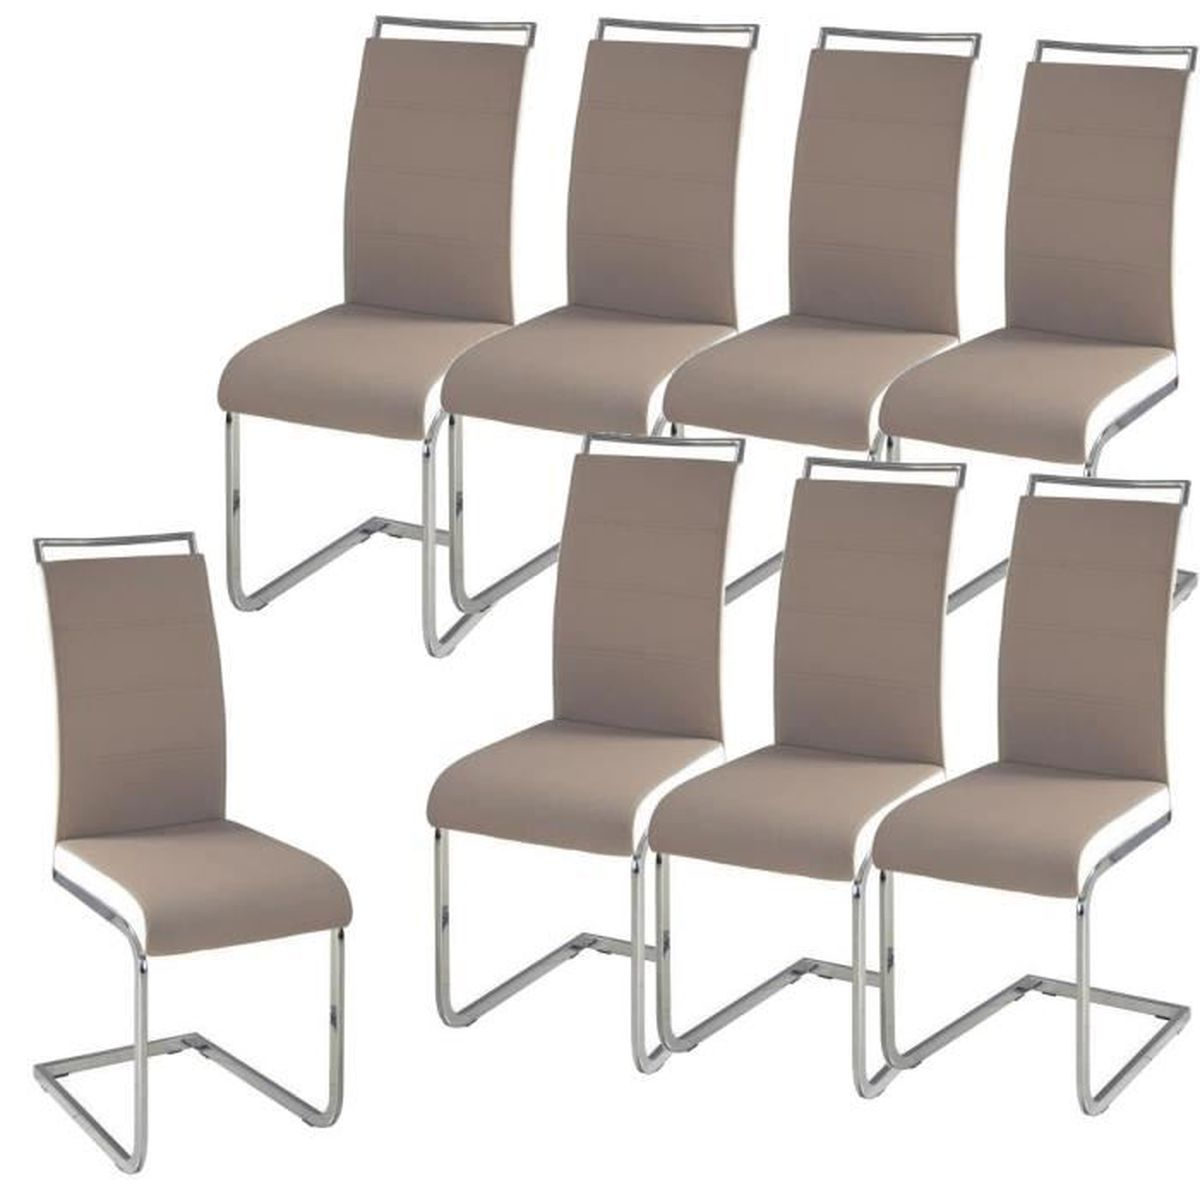 dylan lot de 8 chaises salon taupe blanc achat vente chaise soldes cdiscount. Black Bedroom Furniture Sets. Home Design Ideas